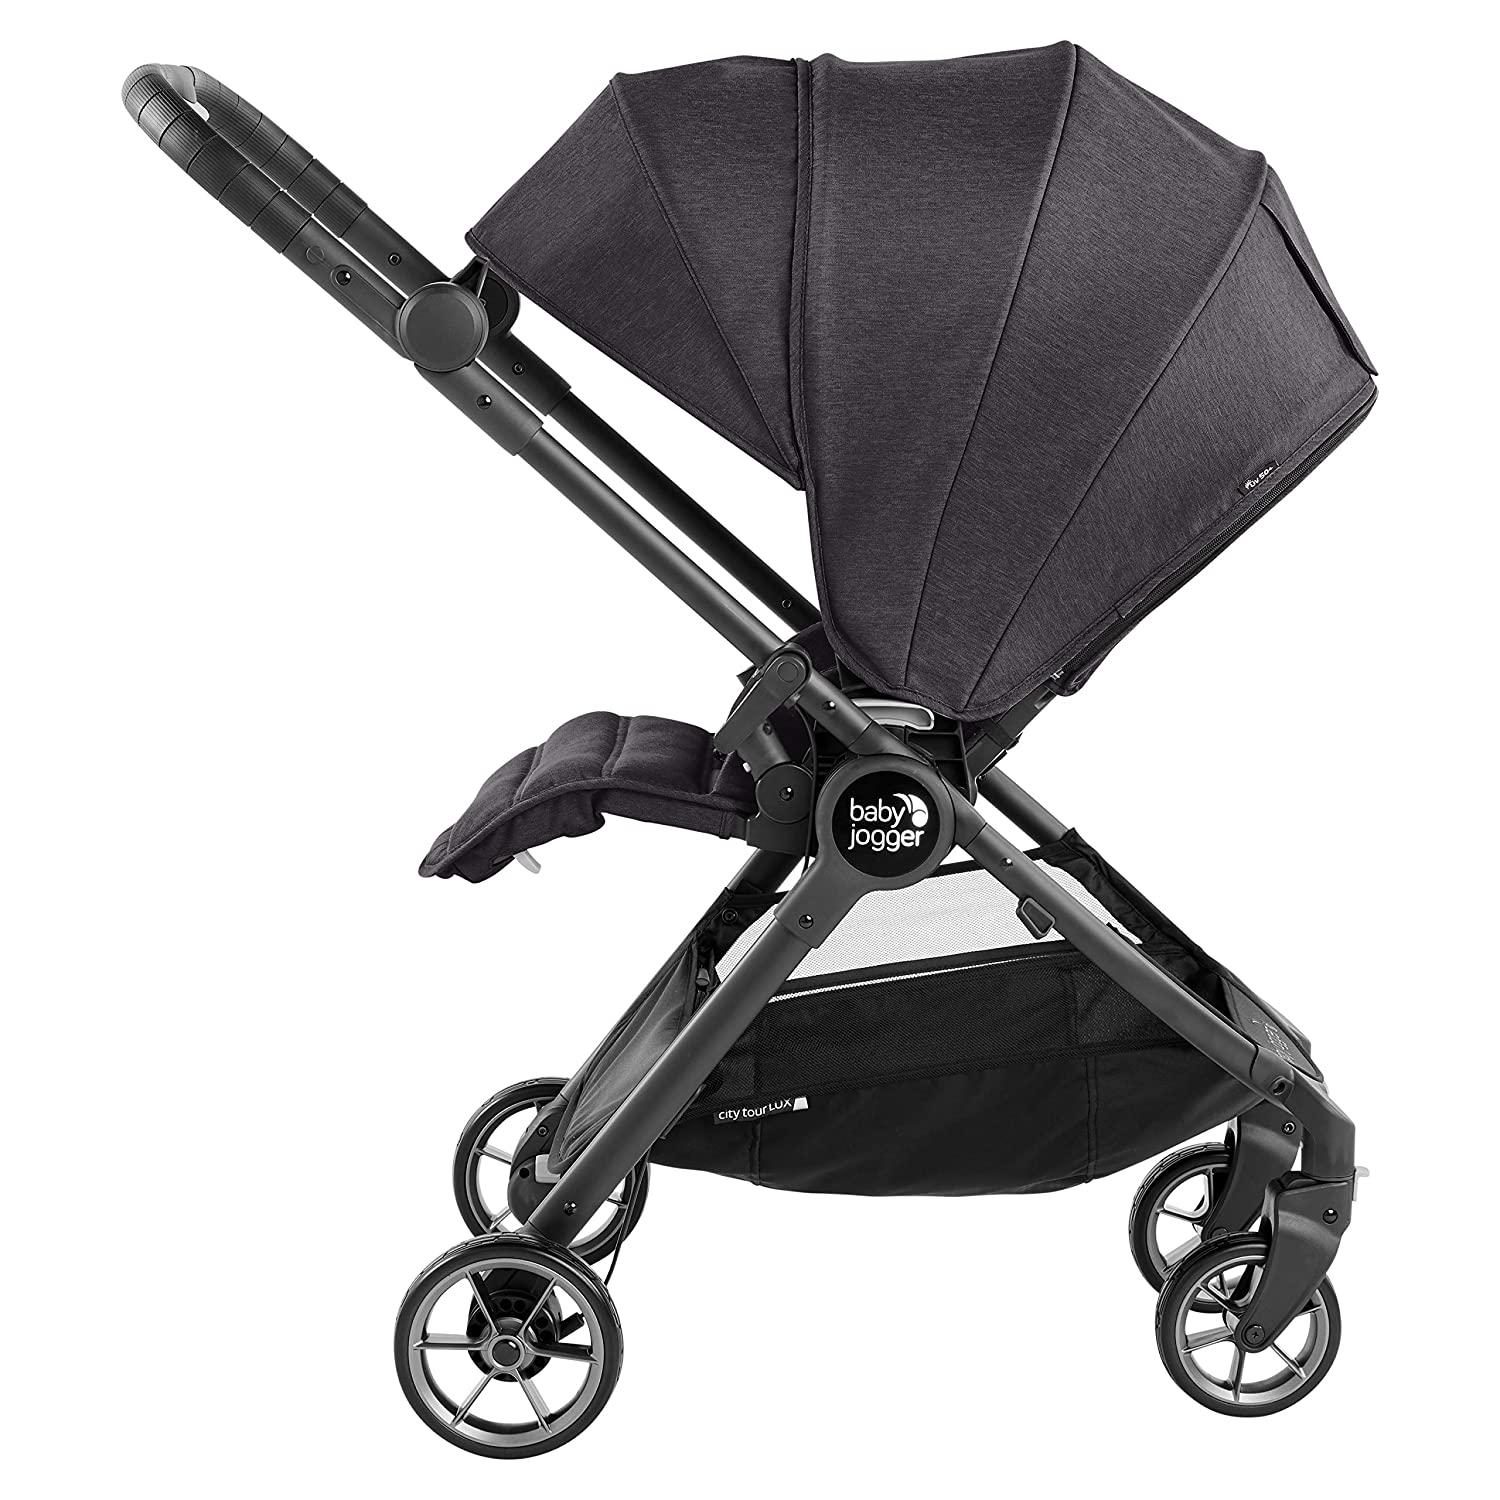 Baby Jogger City Tour LUX Stroller   Compact Travel Stroller   Lightweight Baby Stroller with Backpack-Style Carry Bag, Perfect for Travel, Granite